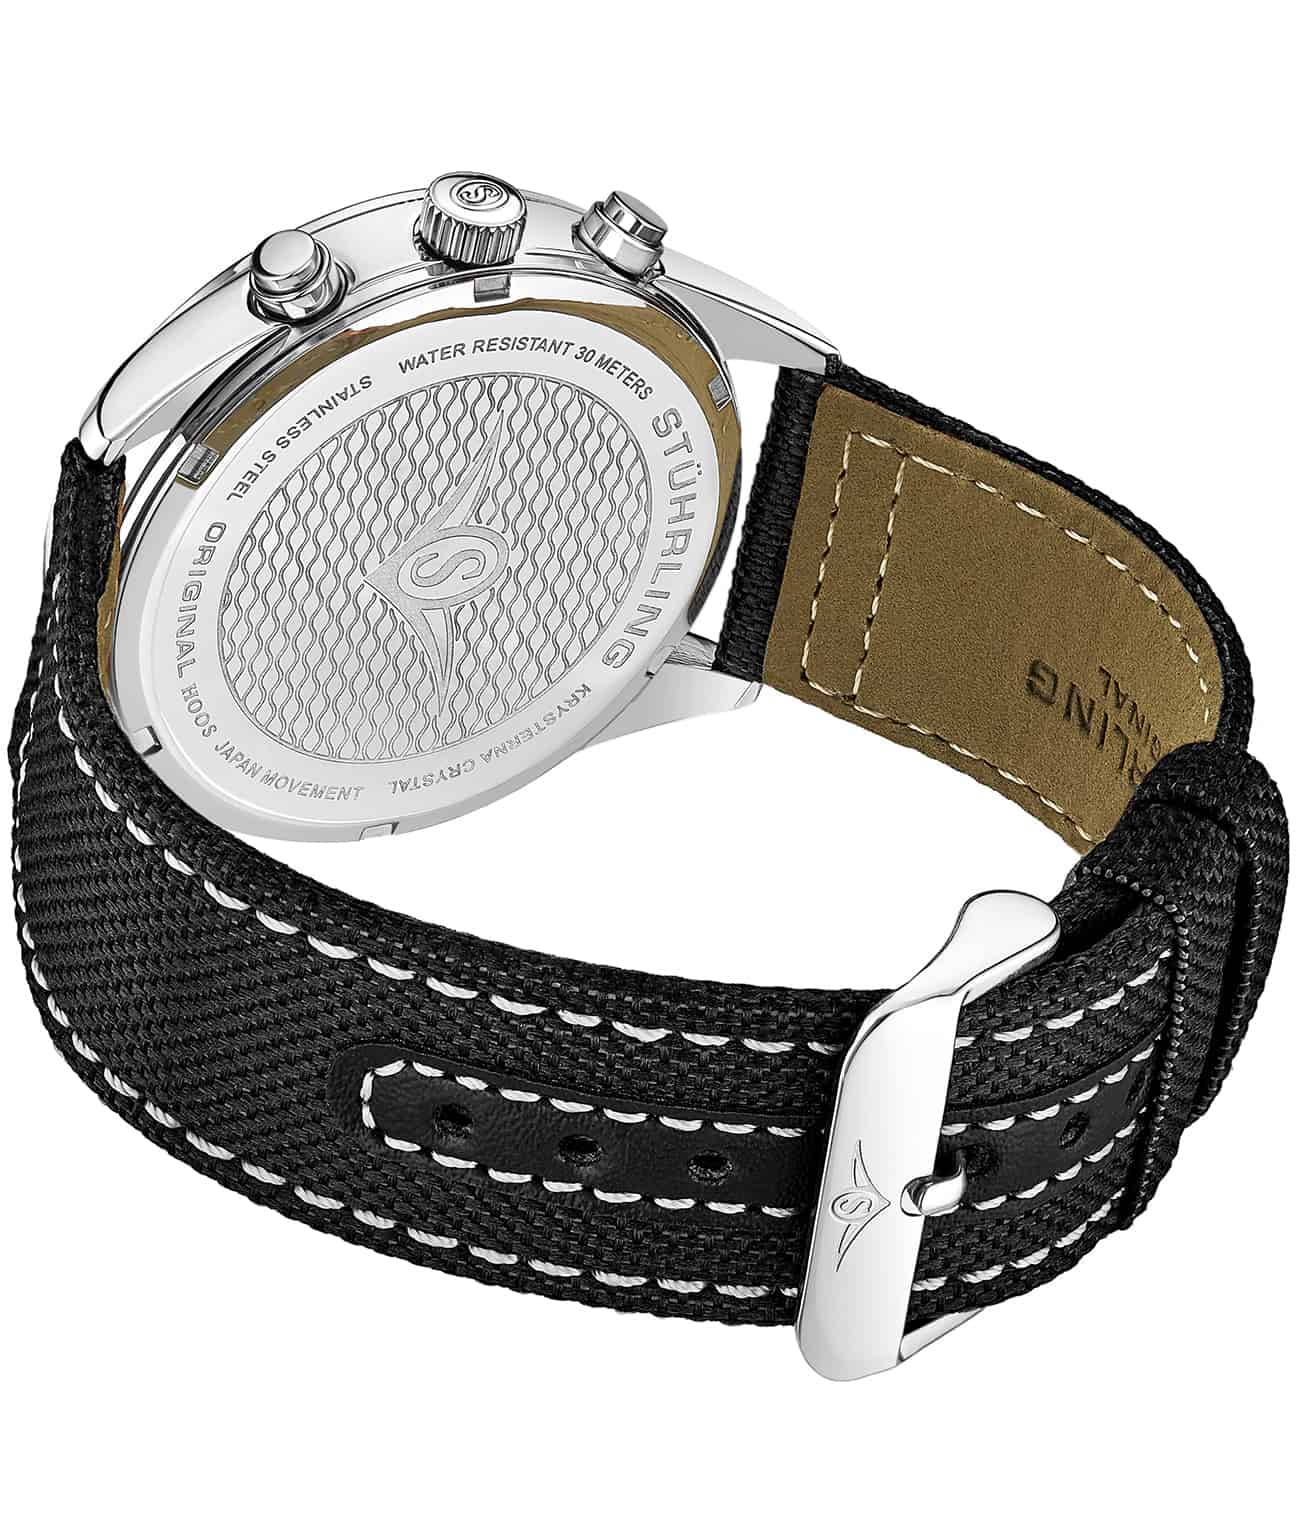 Black Dial / Silver Case / Black Band